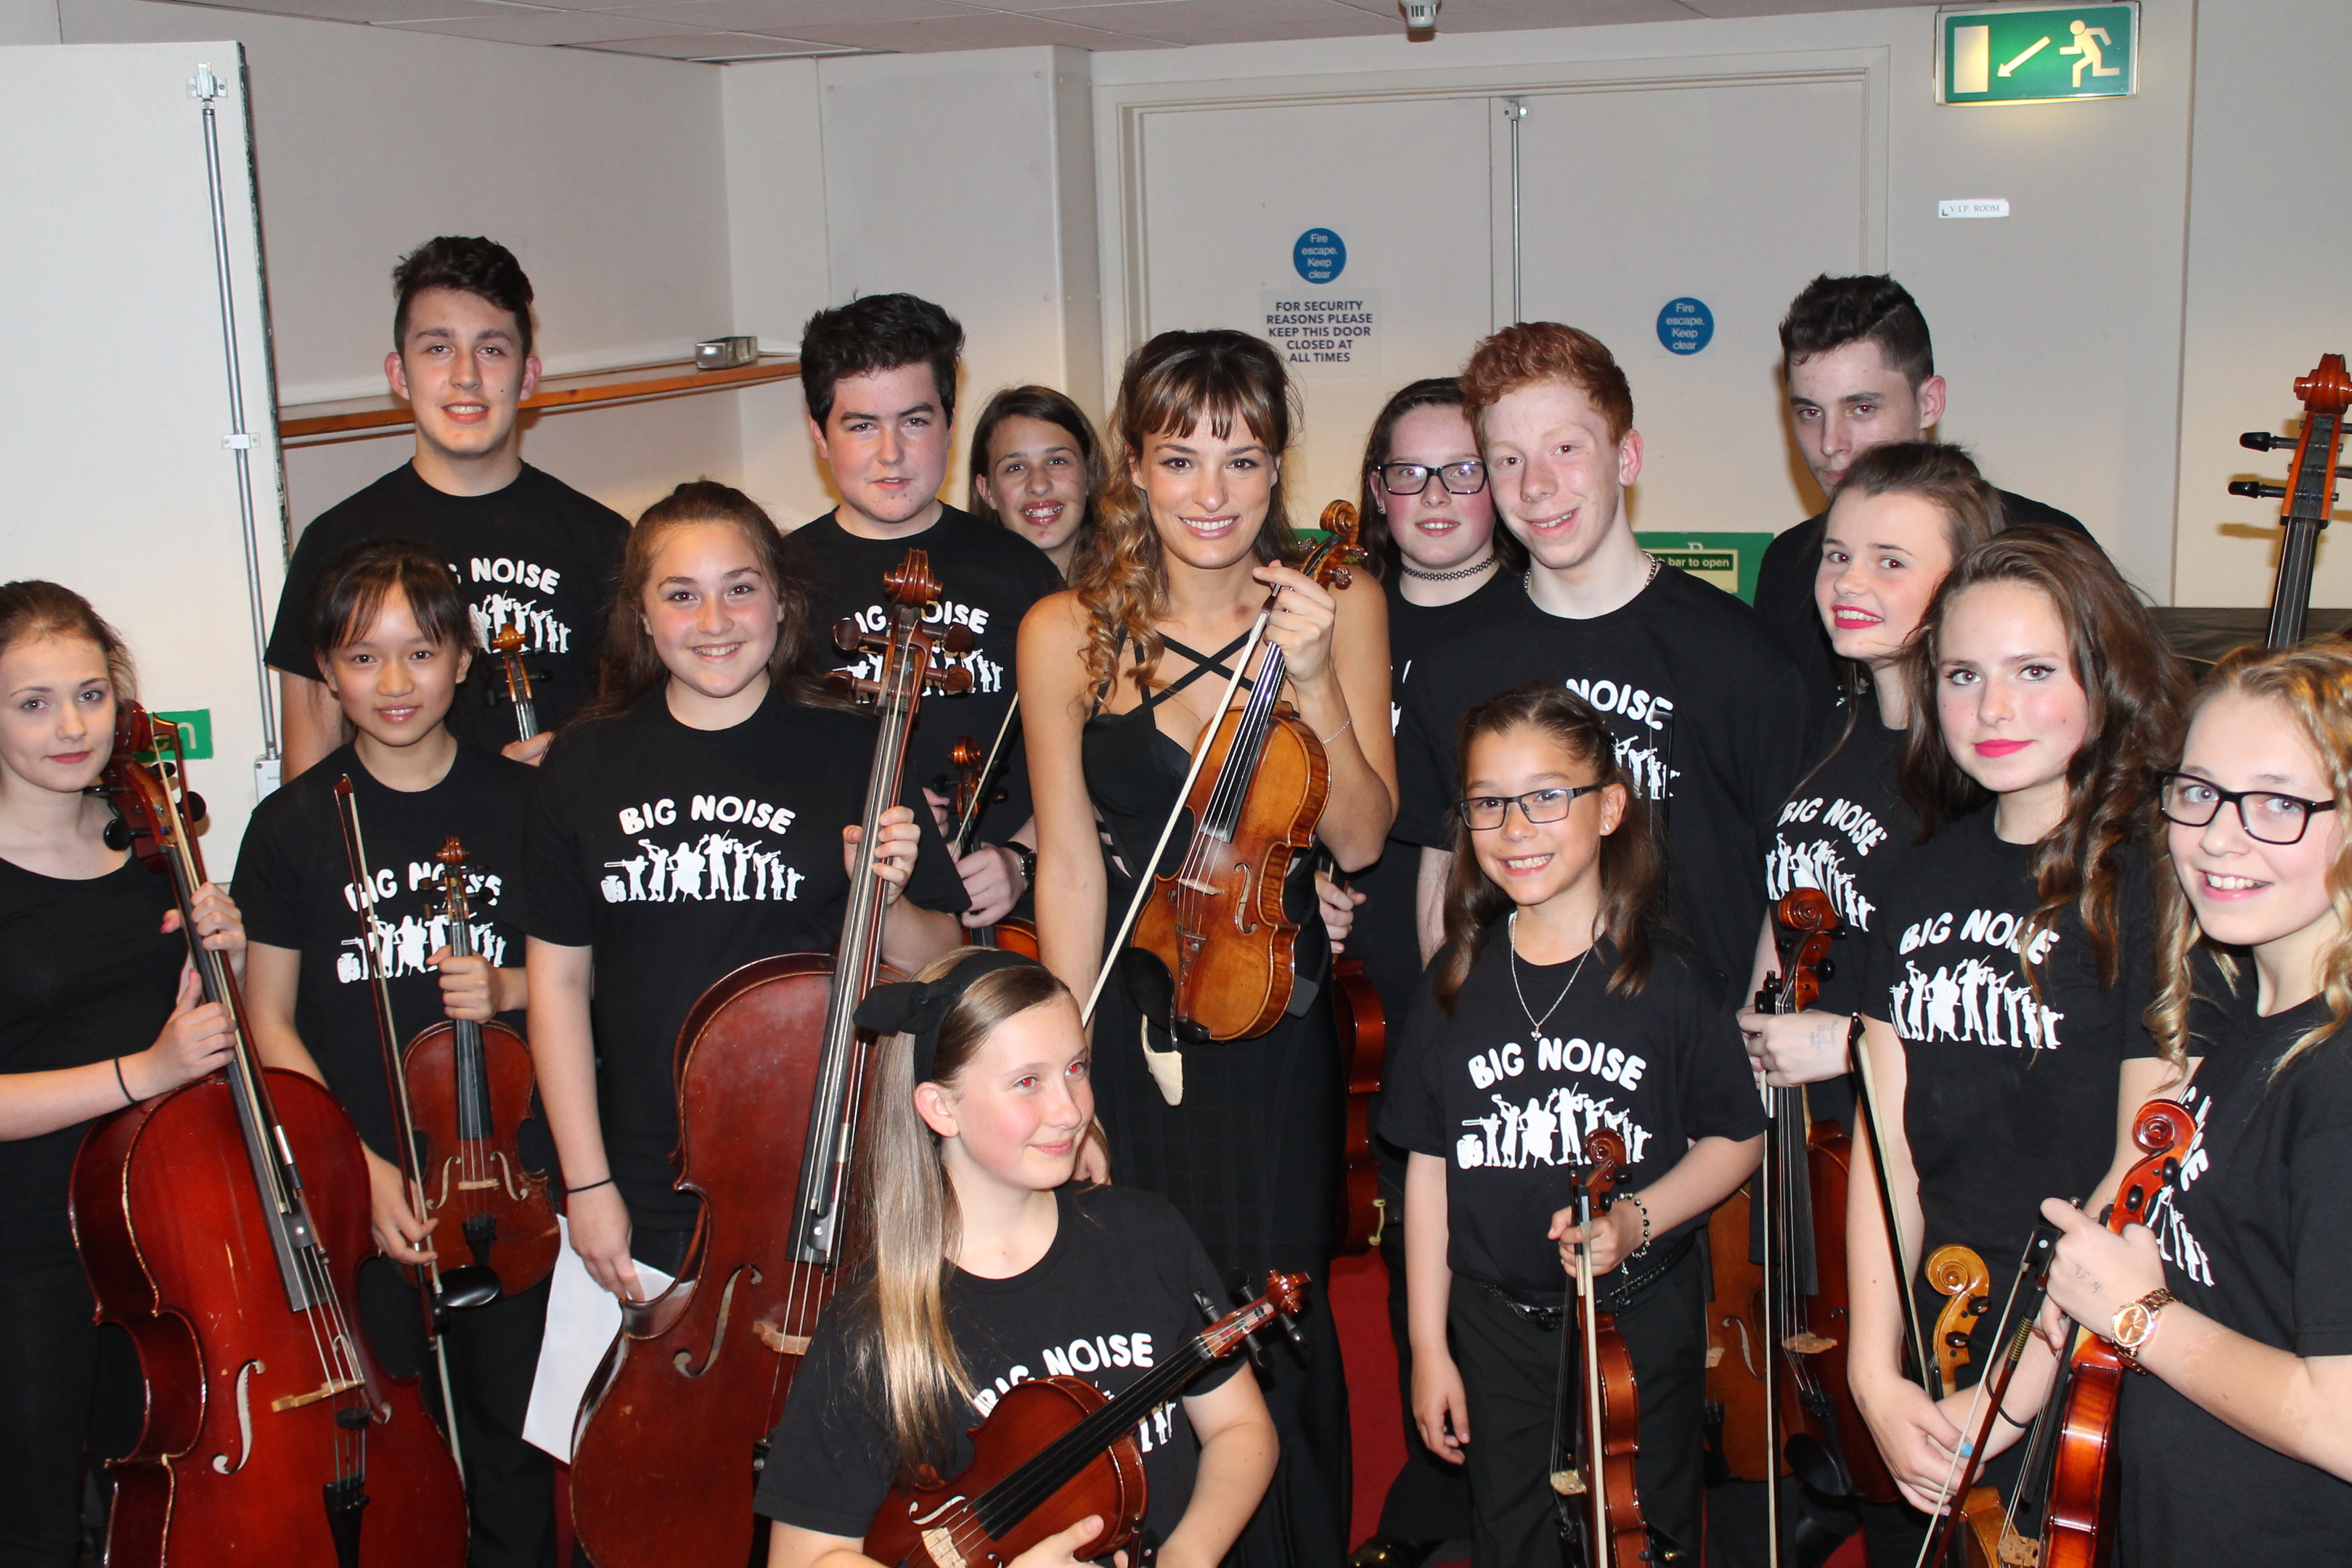 Nicola Benedetti and members of Big Noise Raploch in 2015.